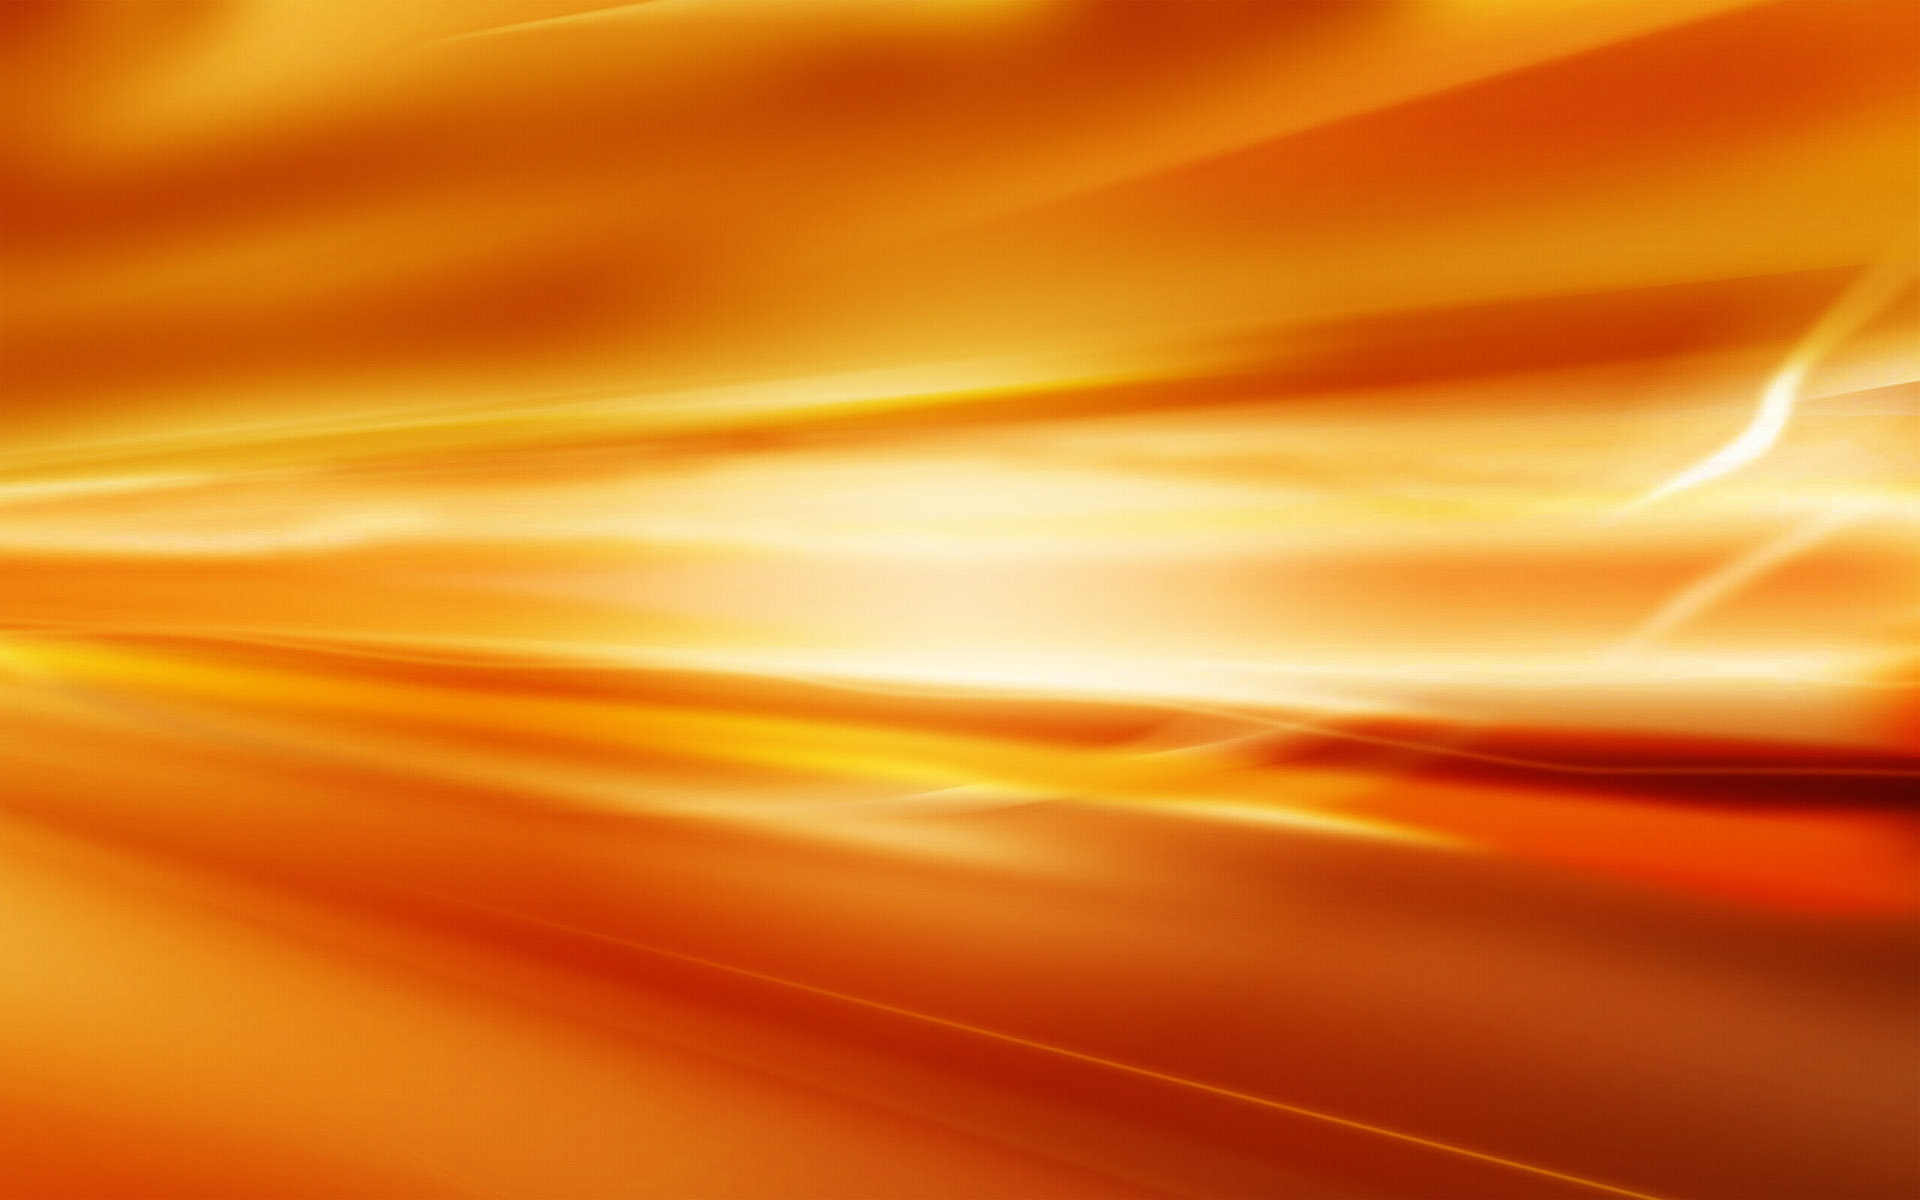 Orange abstract wallpaper 3